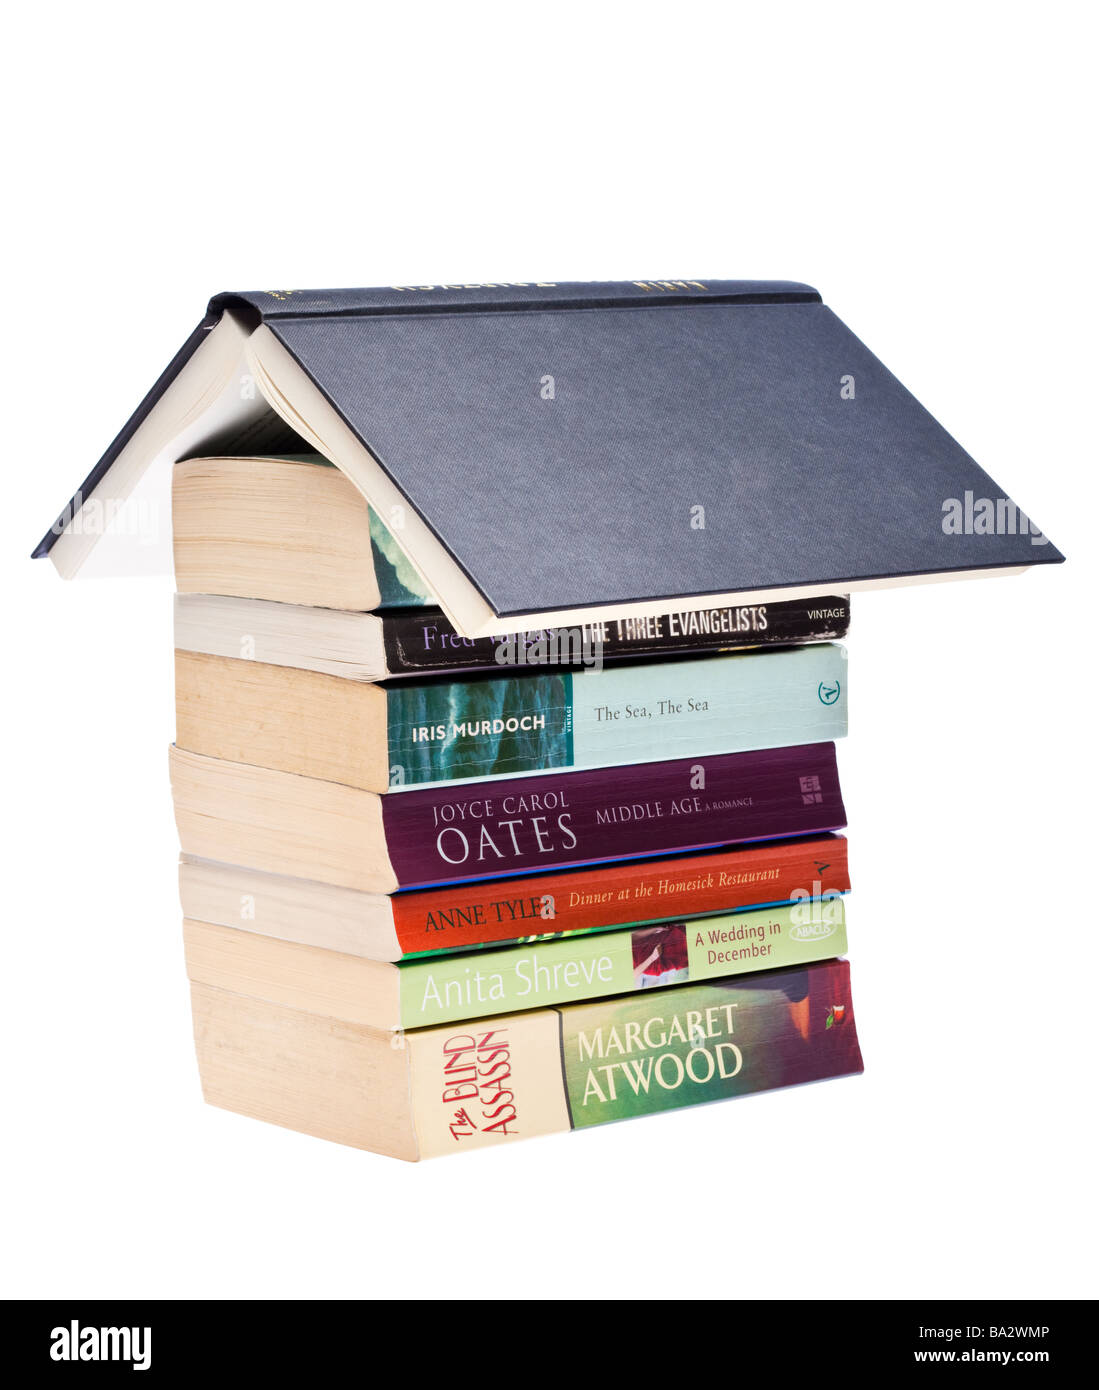 Pile of books stack of literary fiction novels by female authors - Stock Image